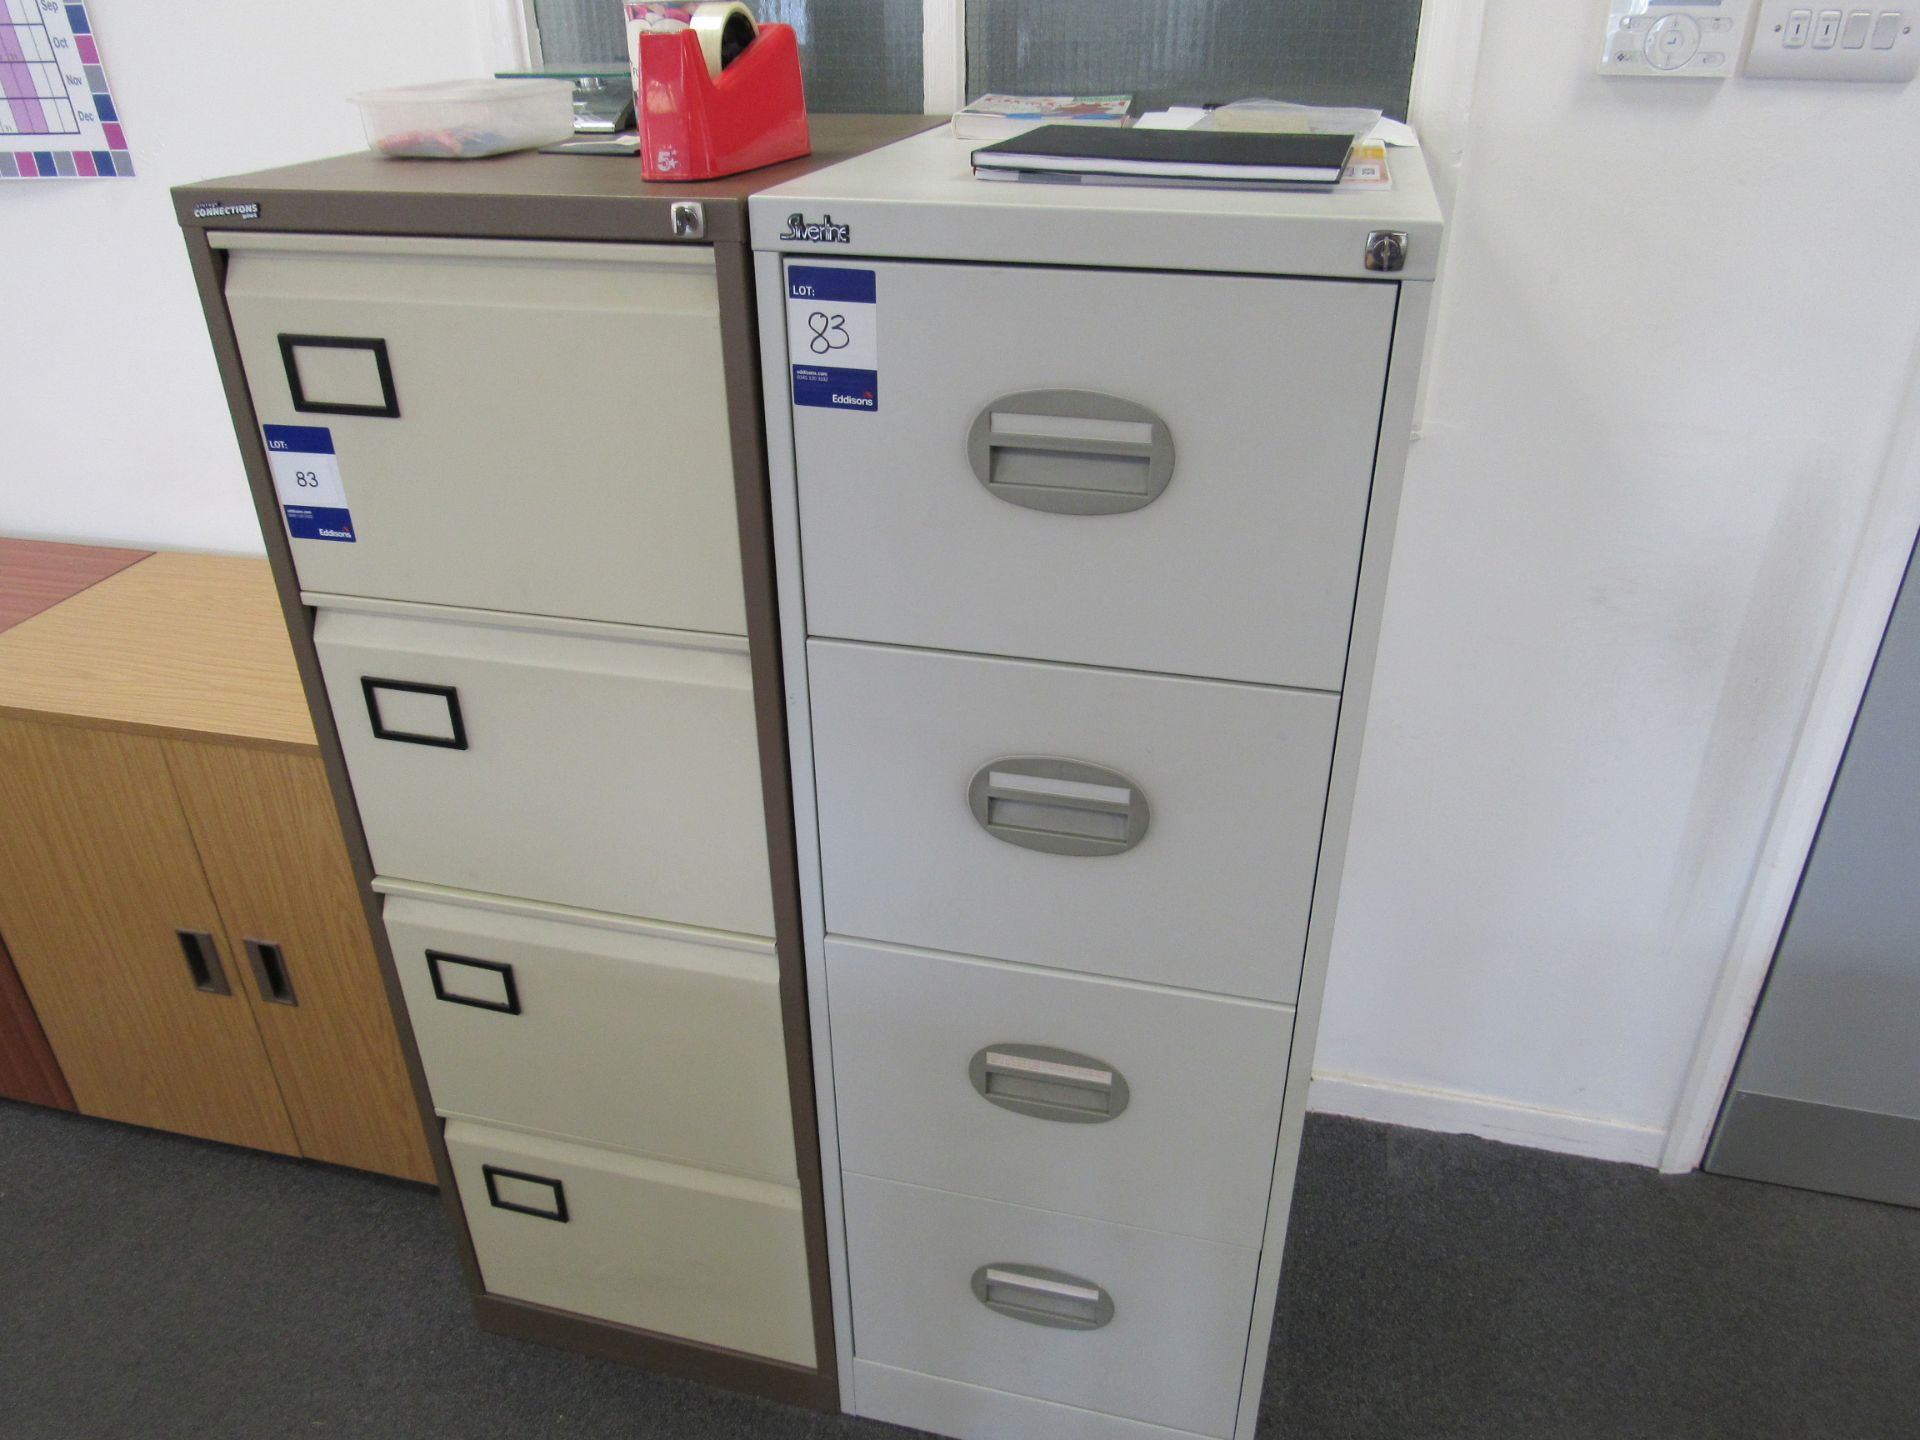 Storage Connections Plus 4 drawer metal filing cabinet, and Silverline metal 4 drawer cabinet, to - Image 2 of 2